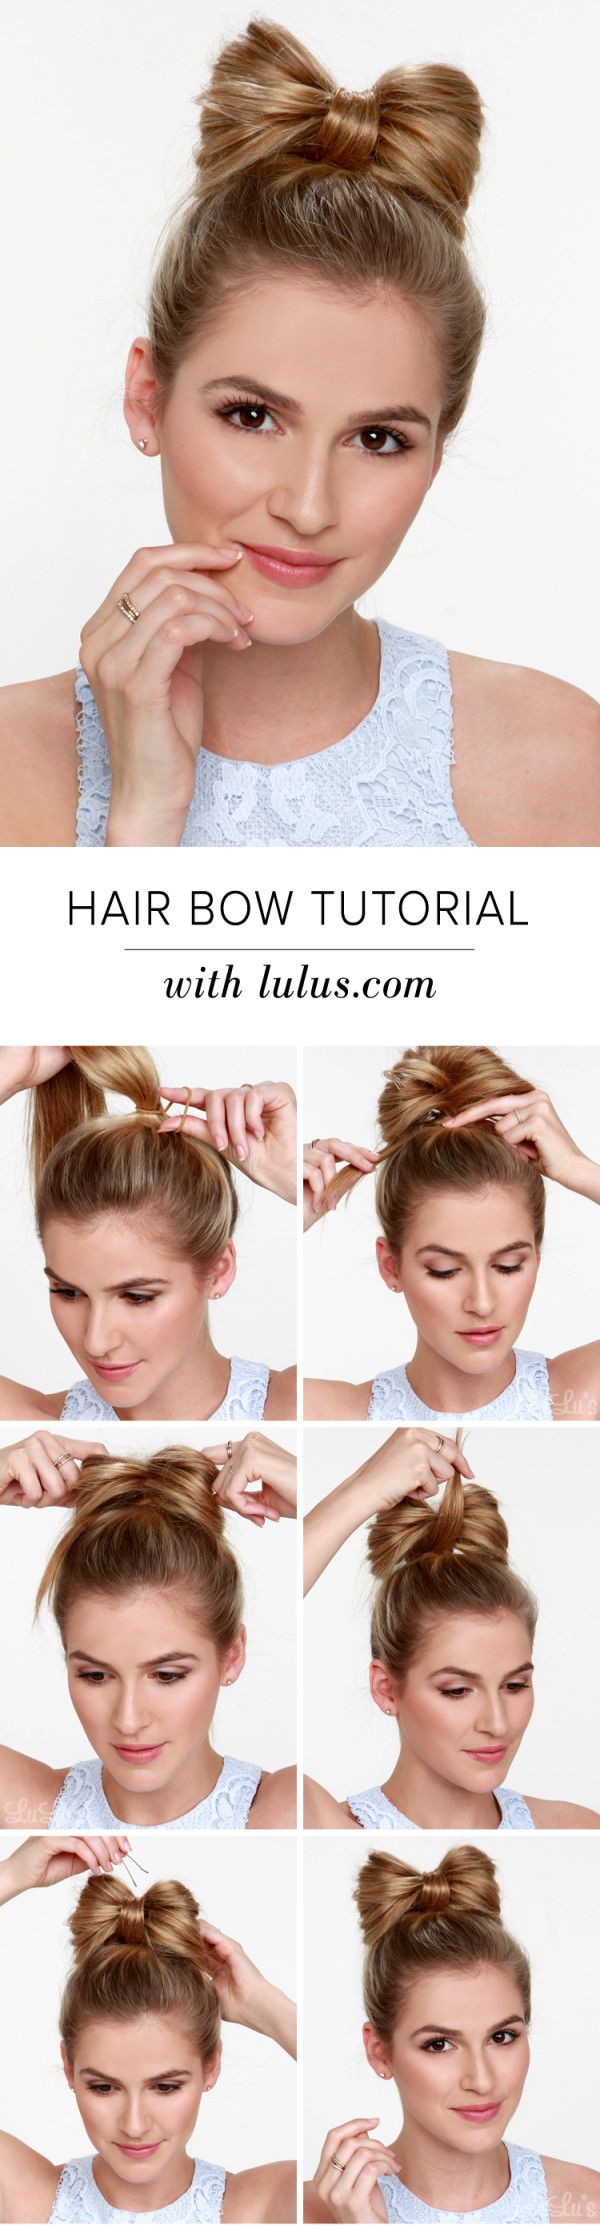 15 Fantastic Diy Ways To Make A Modern Hairstyle In Just A Few